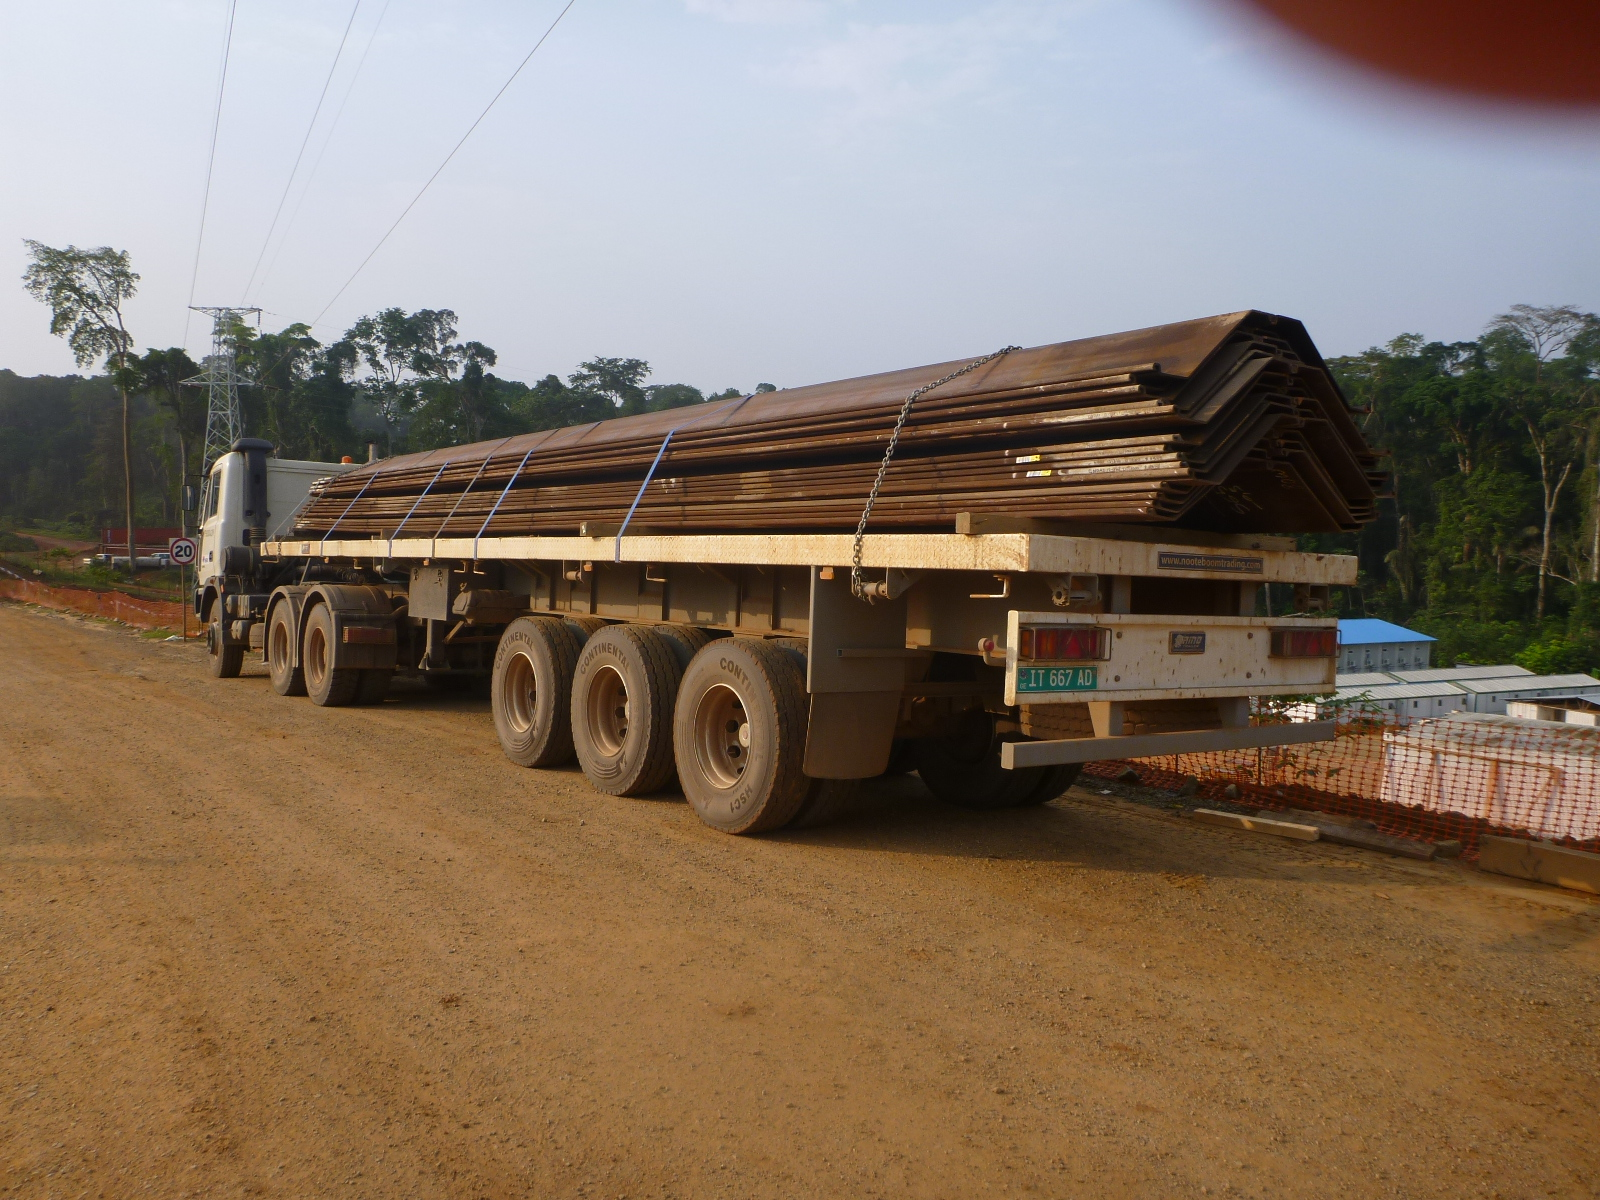 60 tons heavy duty flatbed trailer for severe road conditions